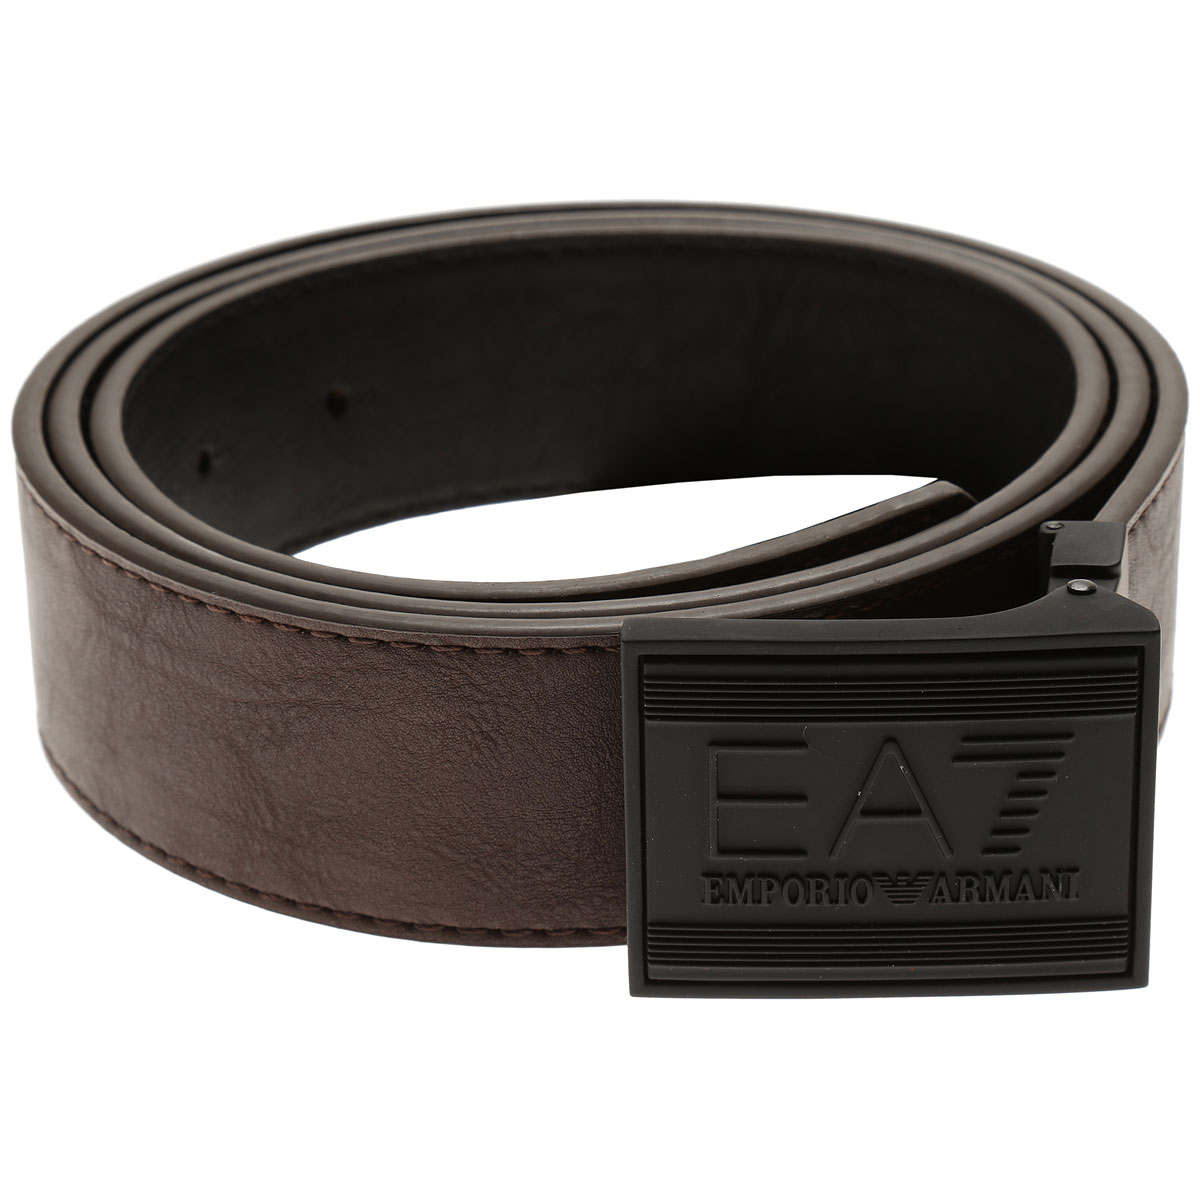 Mens Belts Armani Exchange, Style code: 275376-7P698-00152